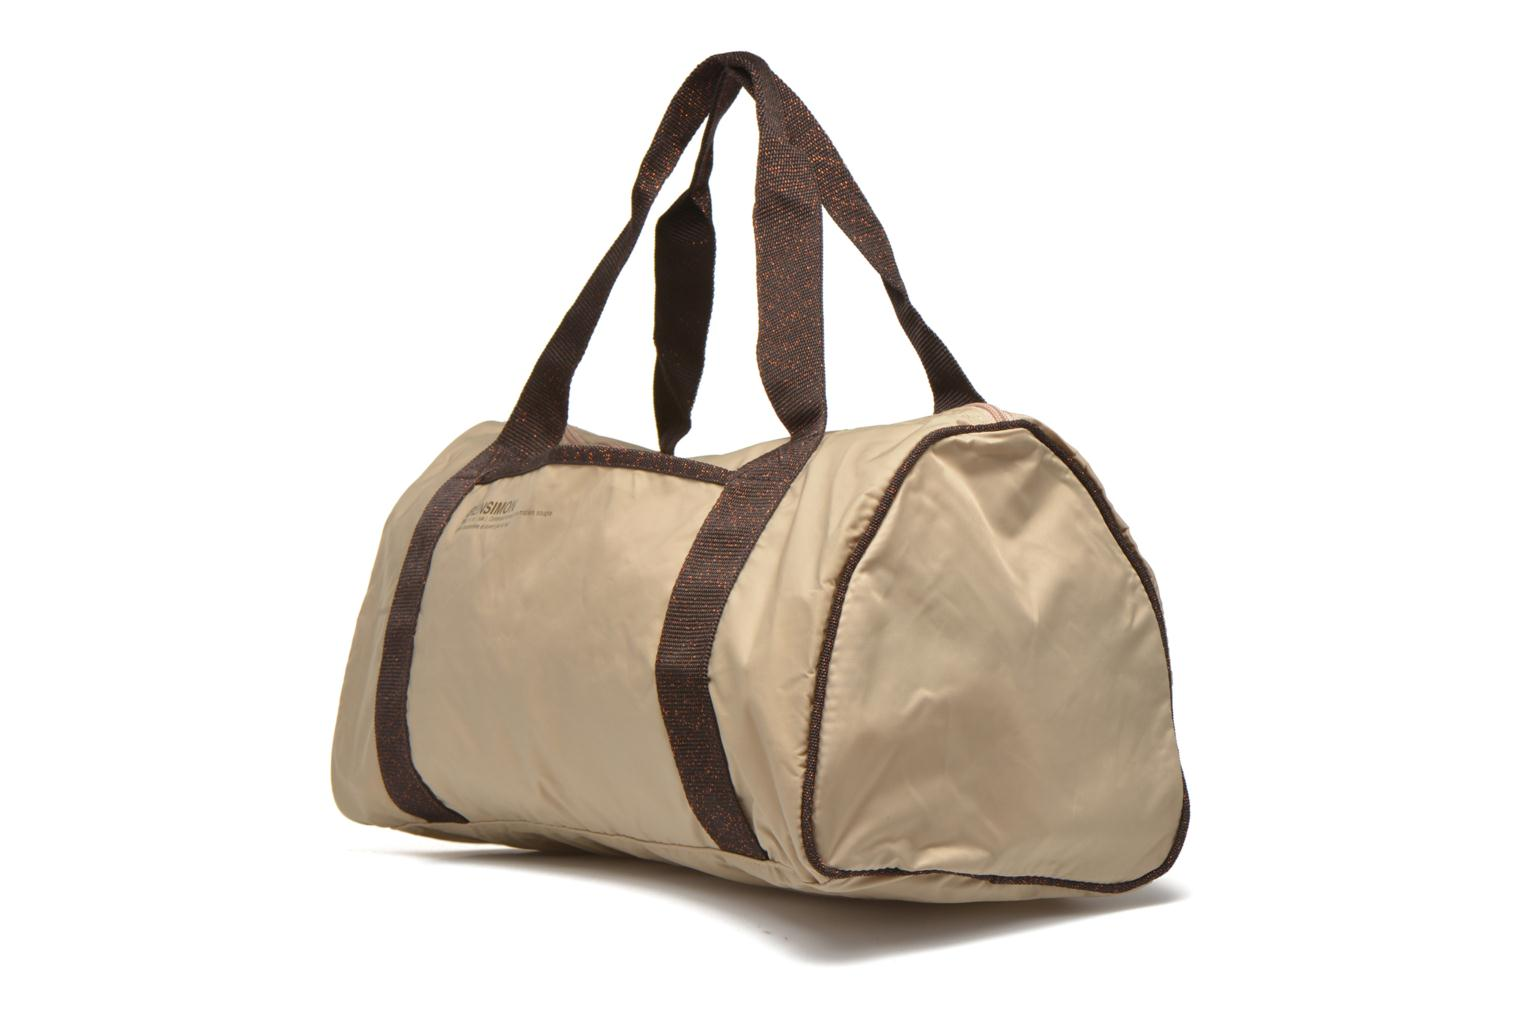 Color Bag Beige A6